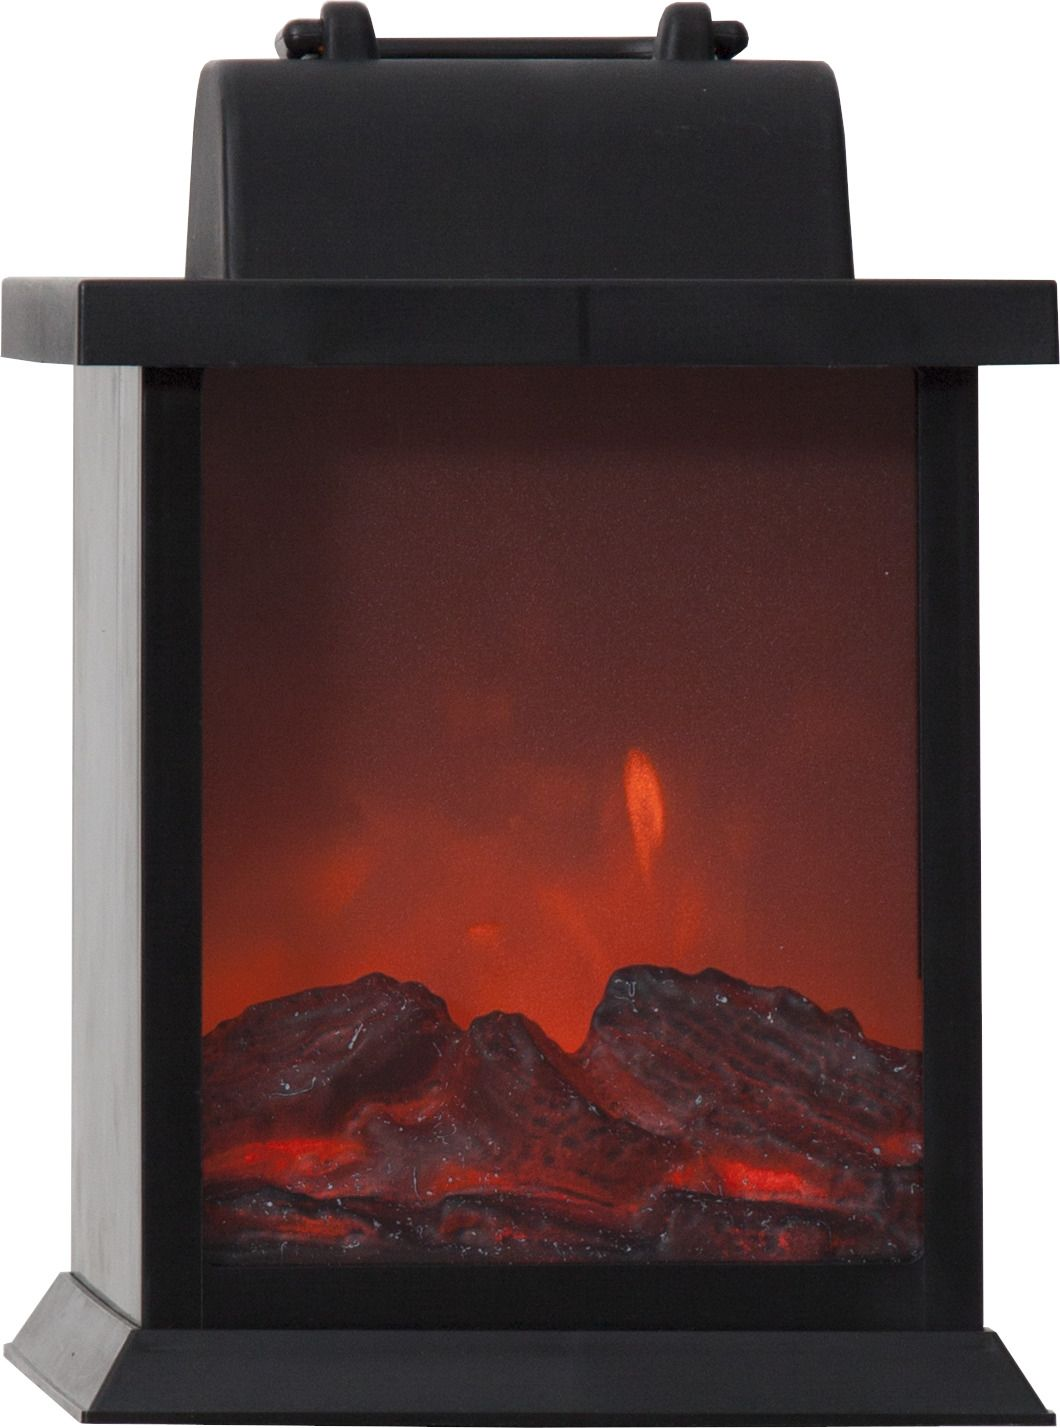 LED-lyhty Star Trading Fireplace 21 cm musta